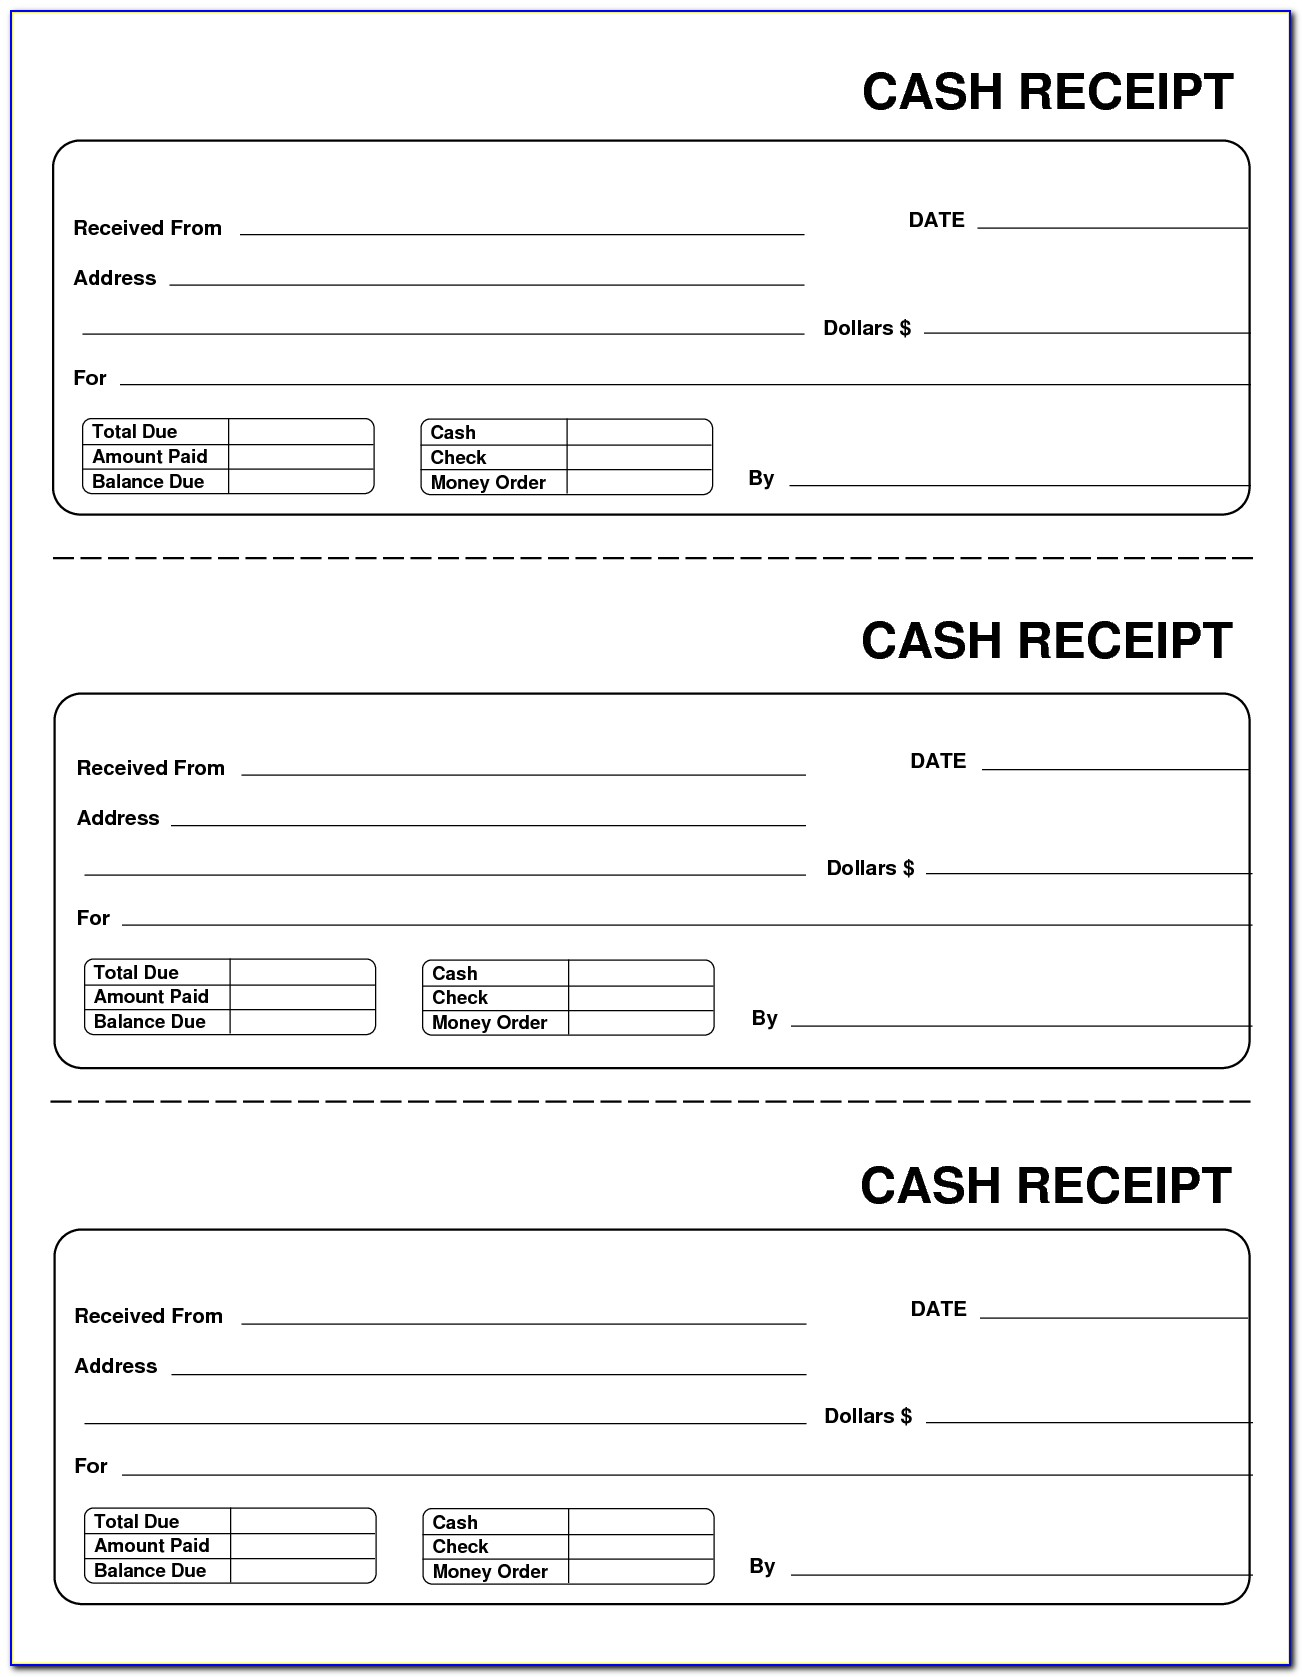 Cash Receipt Sample Free Download